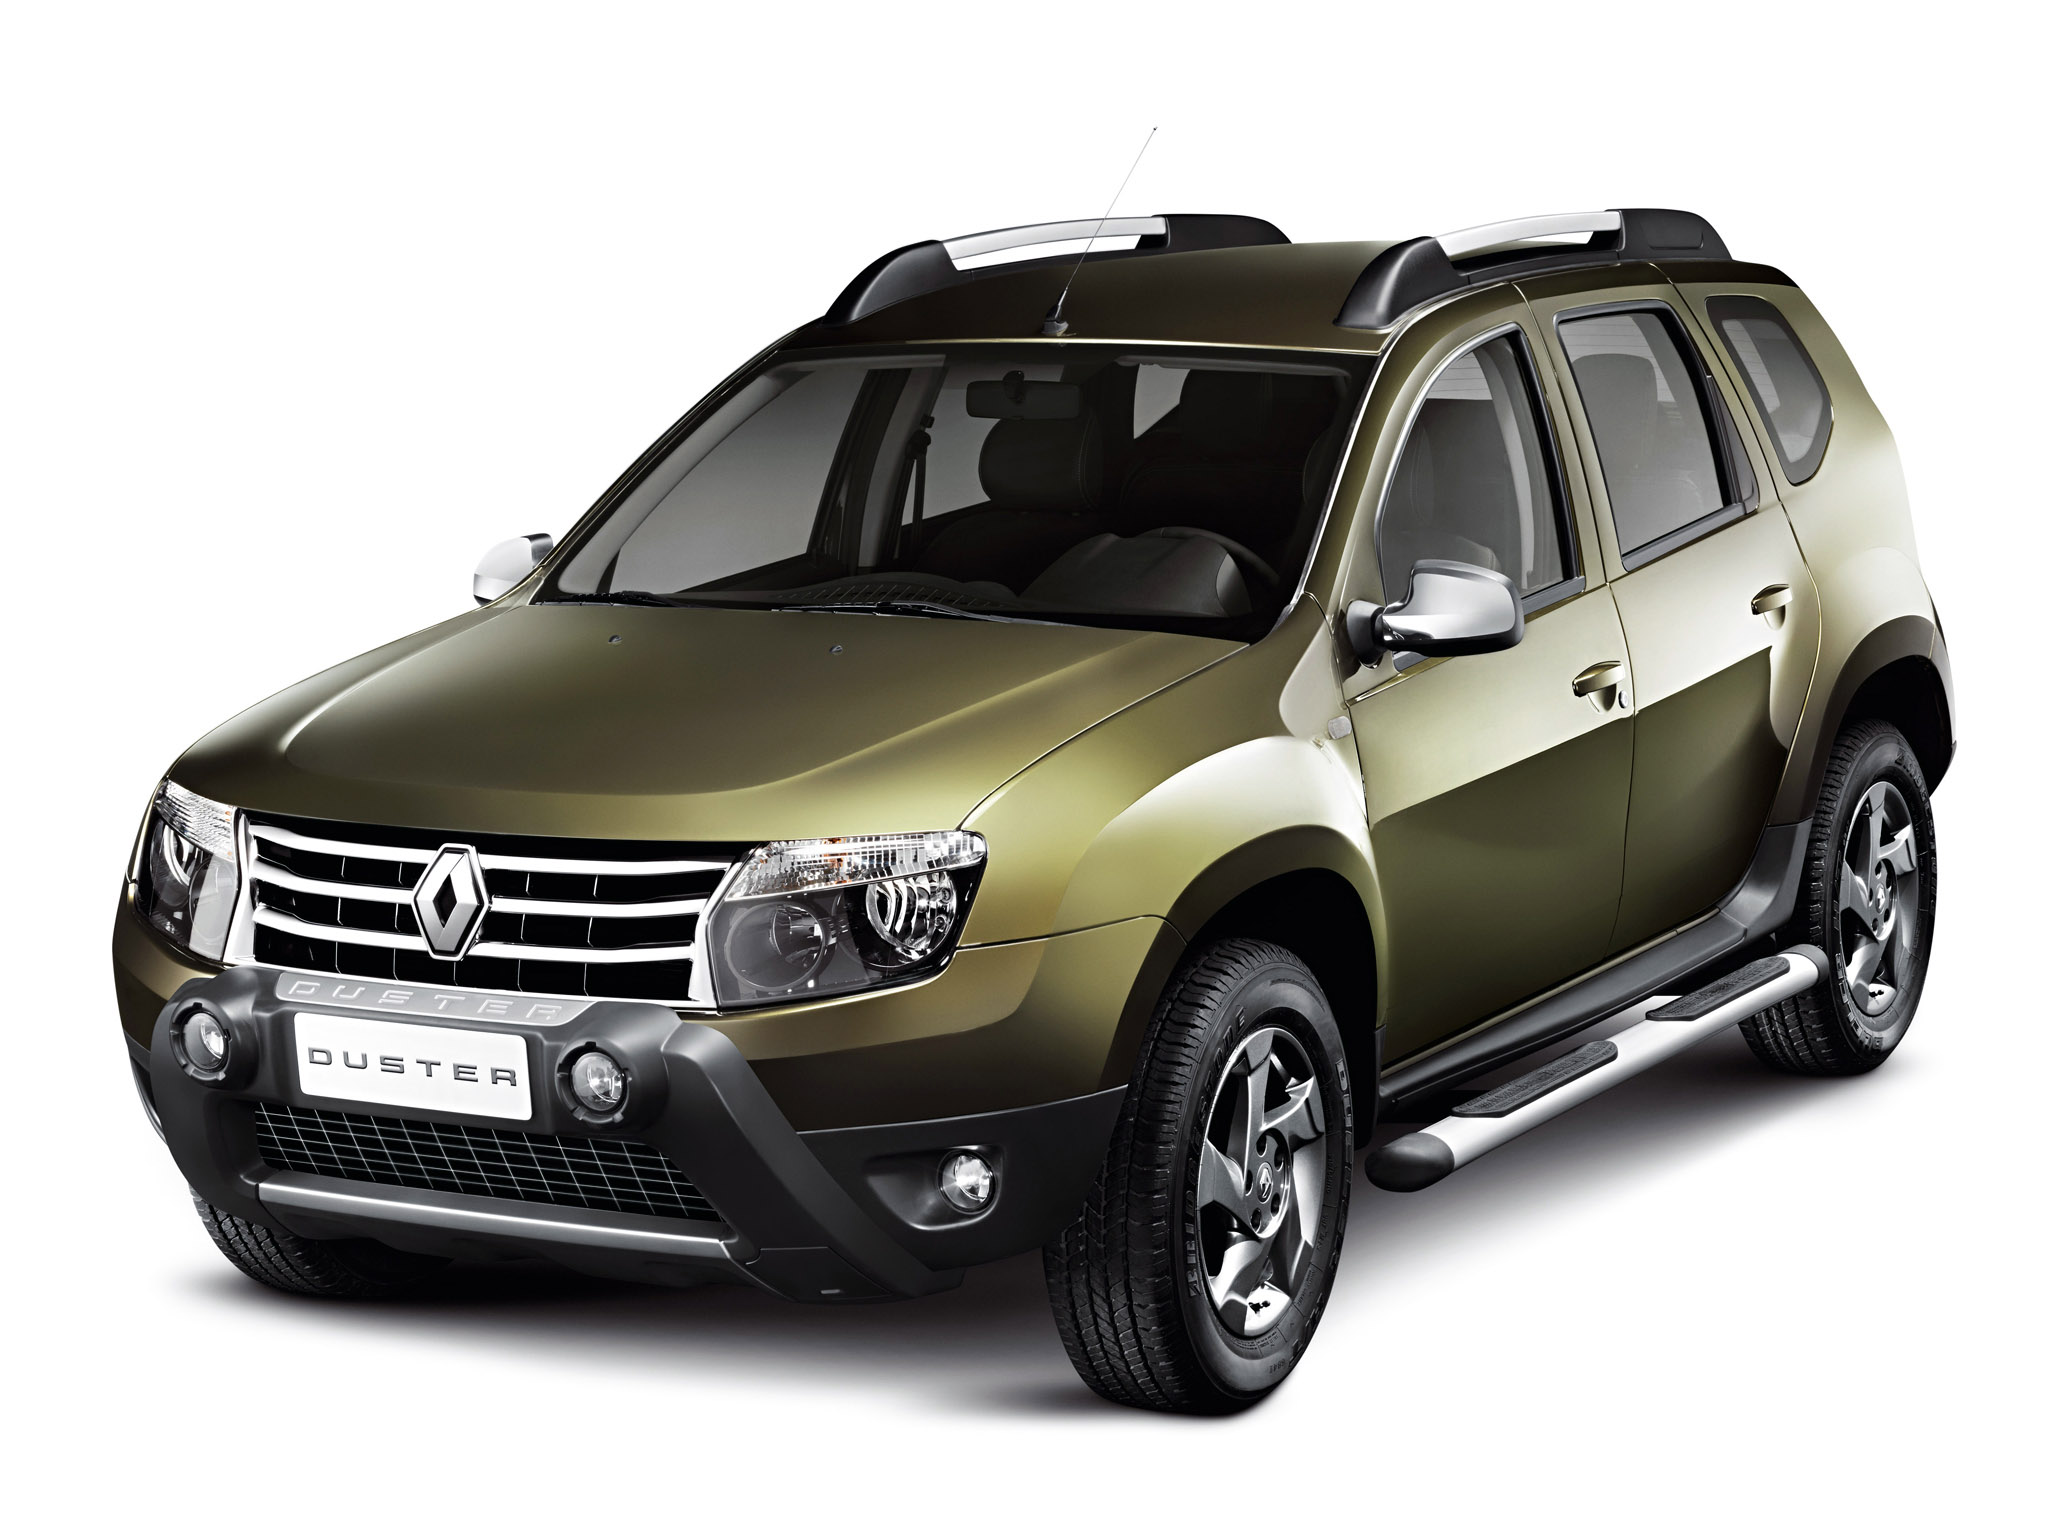 renault duster 2010 renault duster 2010 photo 03 car in. Black Bedroom Furniture Sets. Home Design Ideas